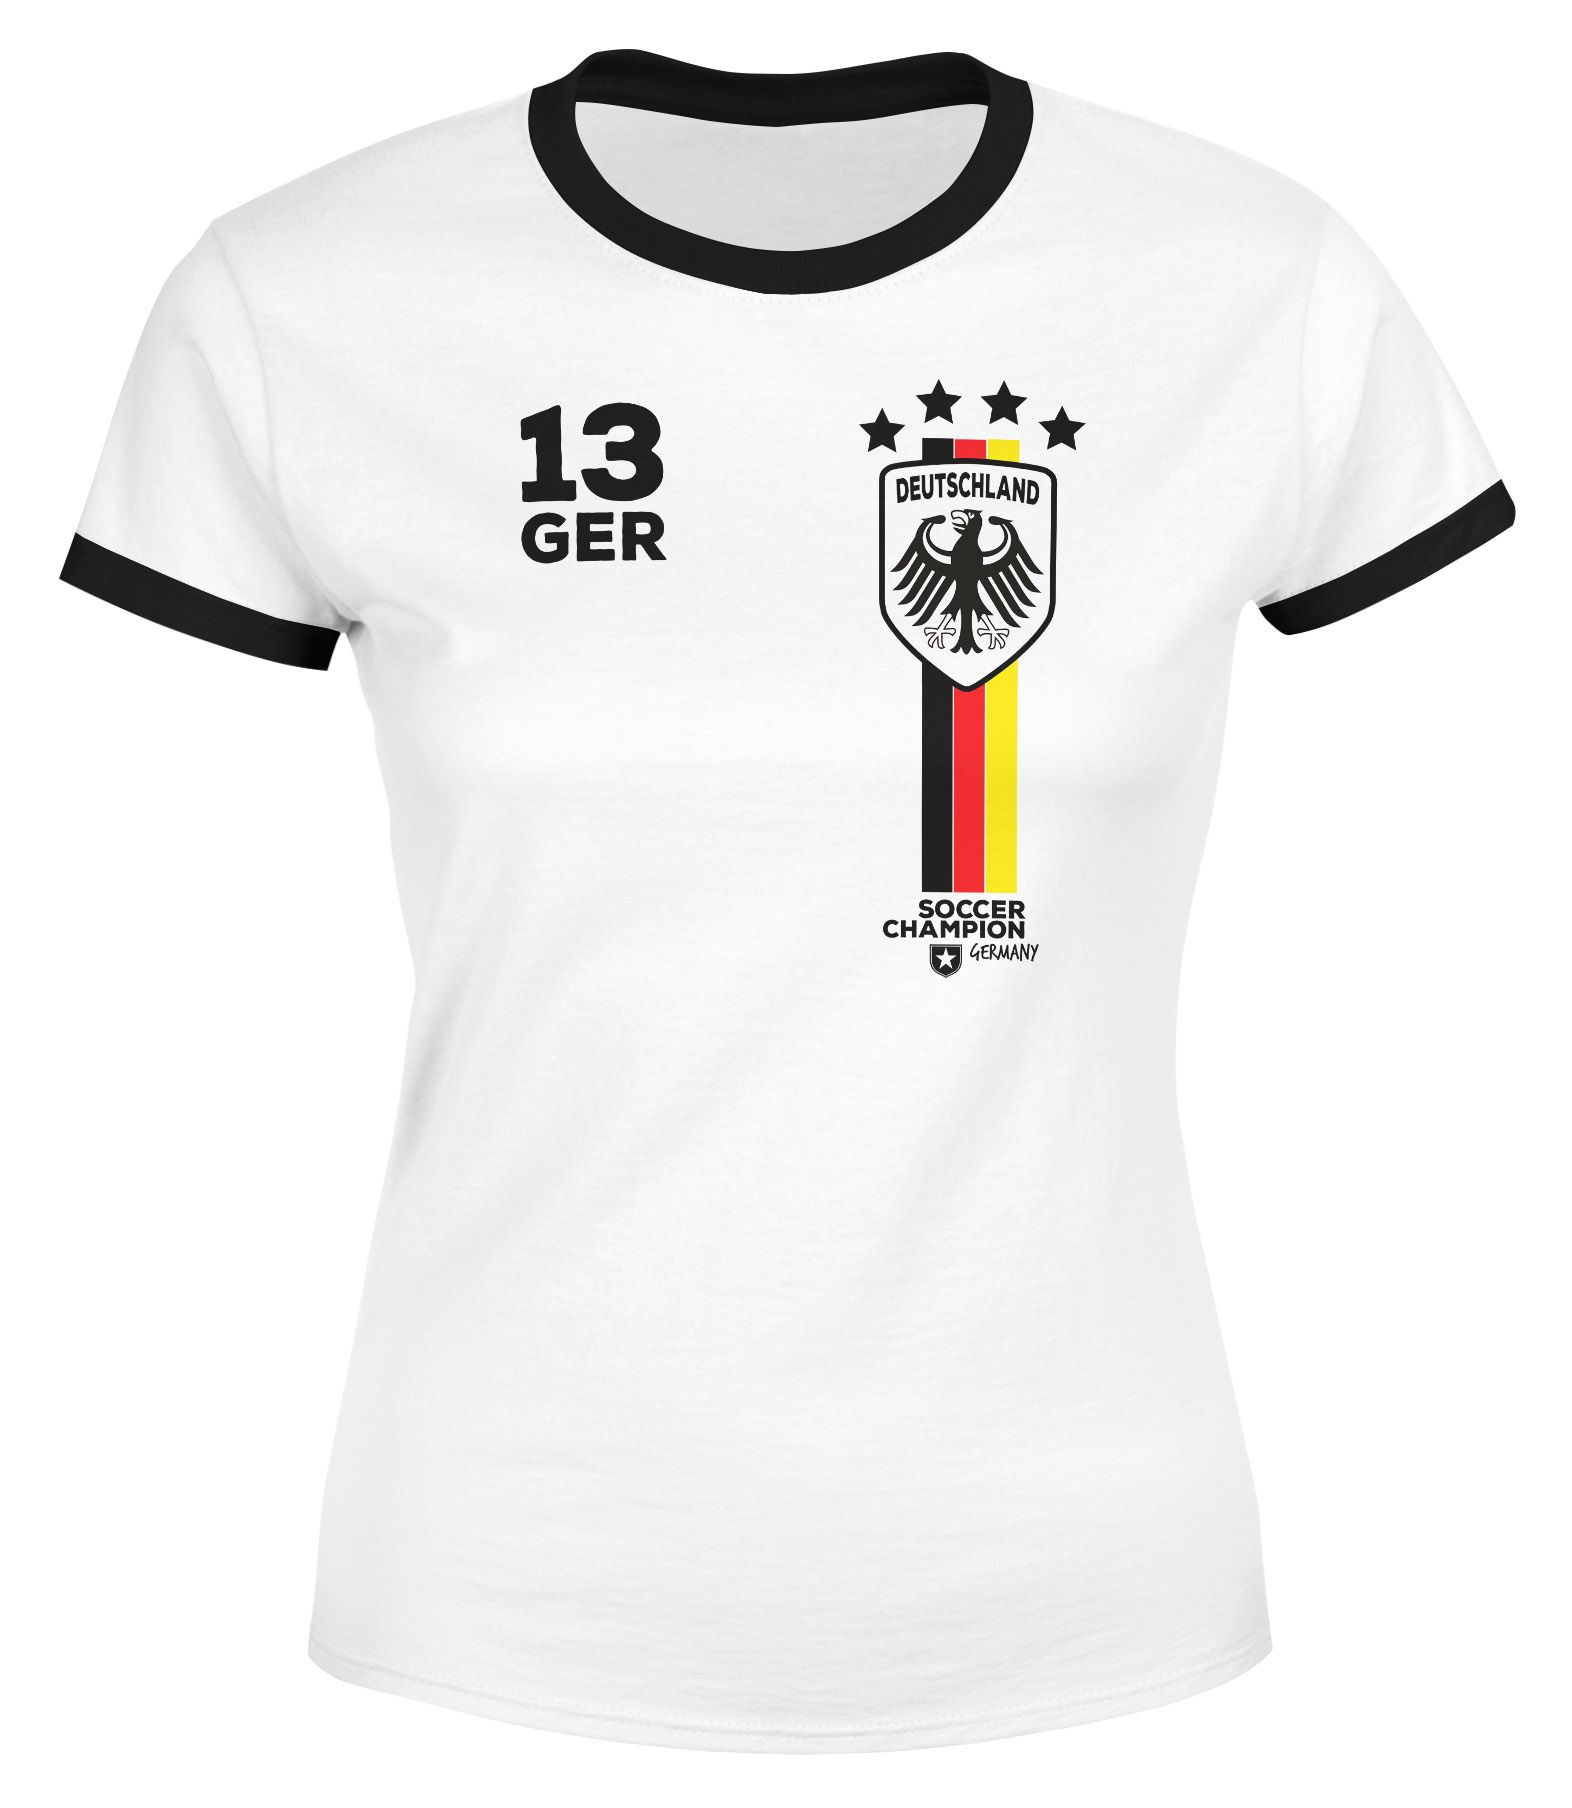 Moonworks Damen Fan Shirt Fussball Retro Deutschland Germany Weltmeisterschaft Fan Trikot Style 2018 Wm Weltmeisterschaft Shirts Trikot